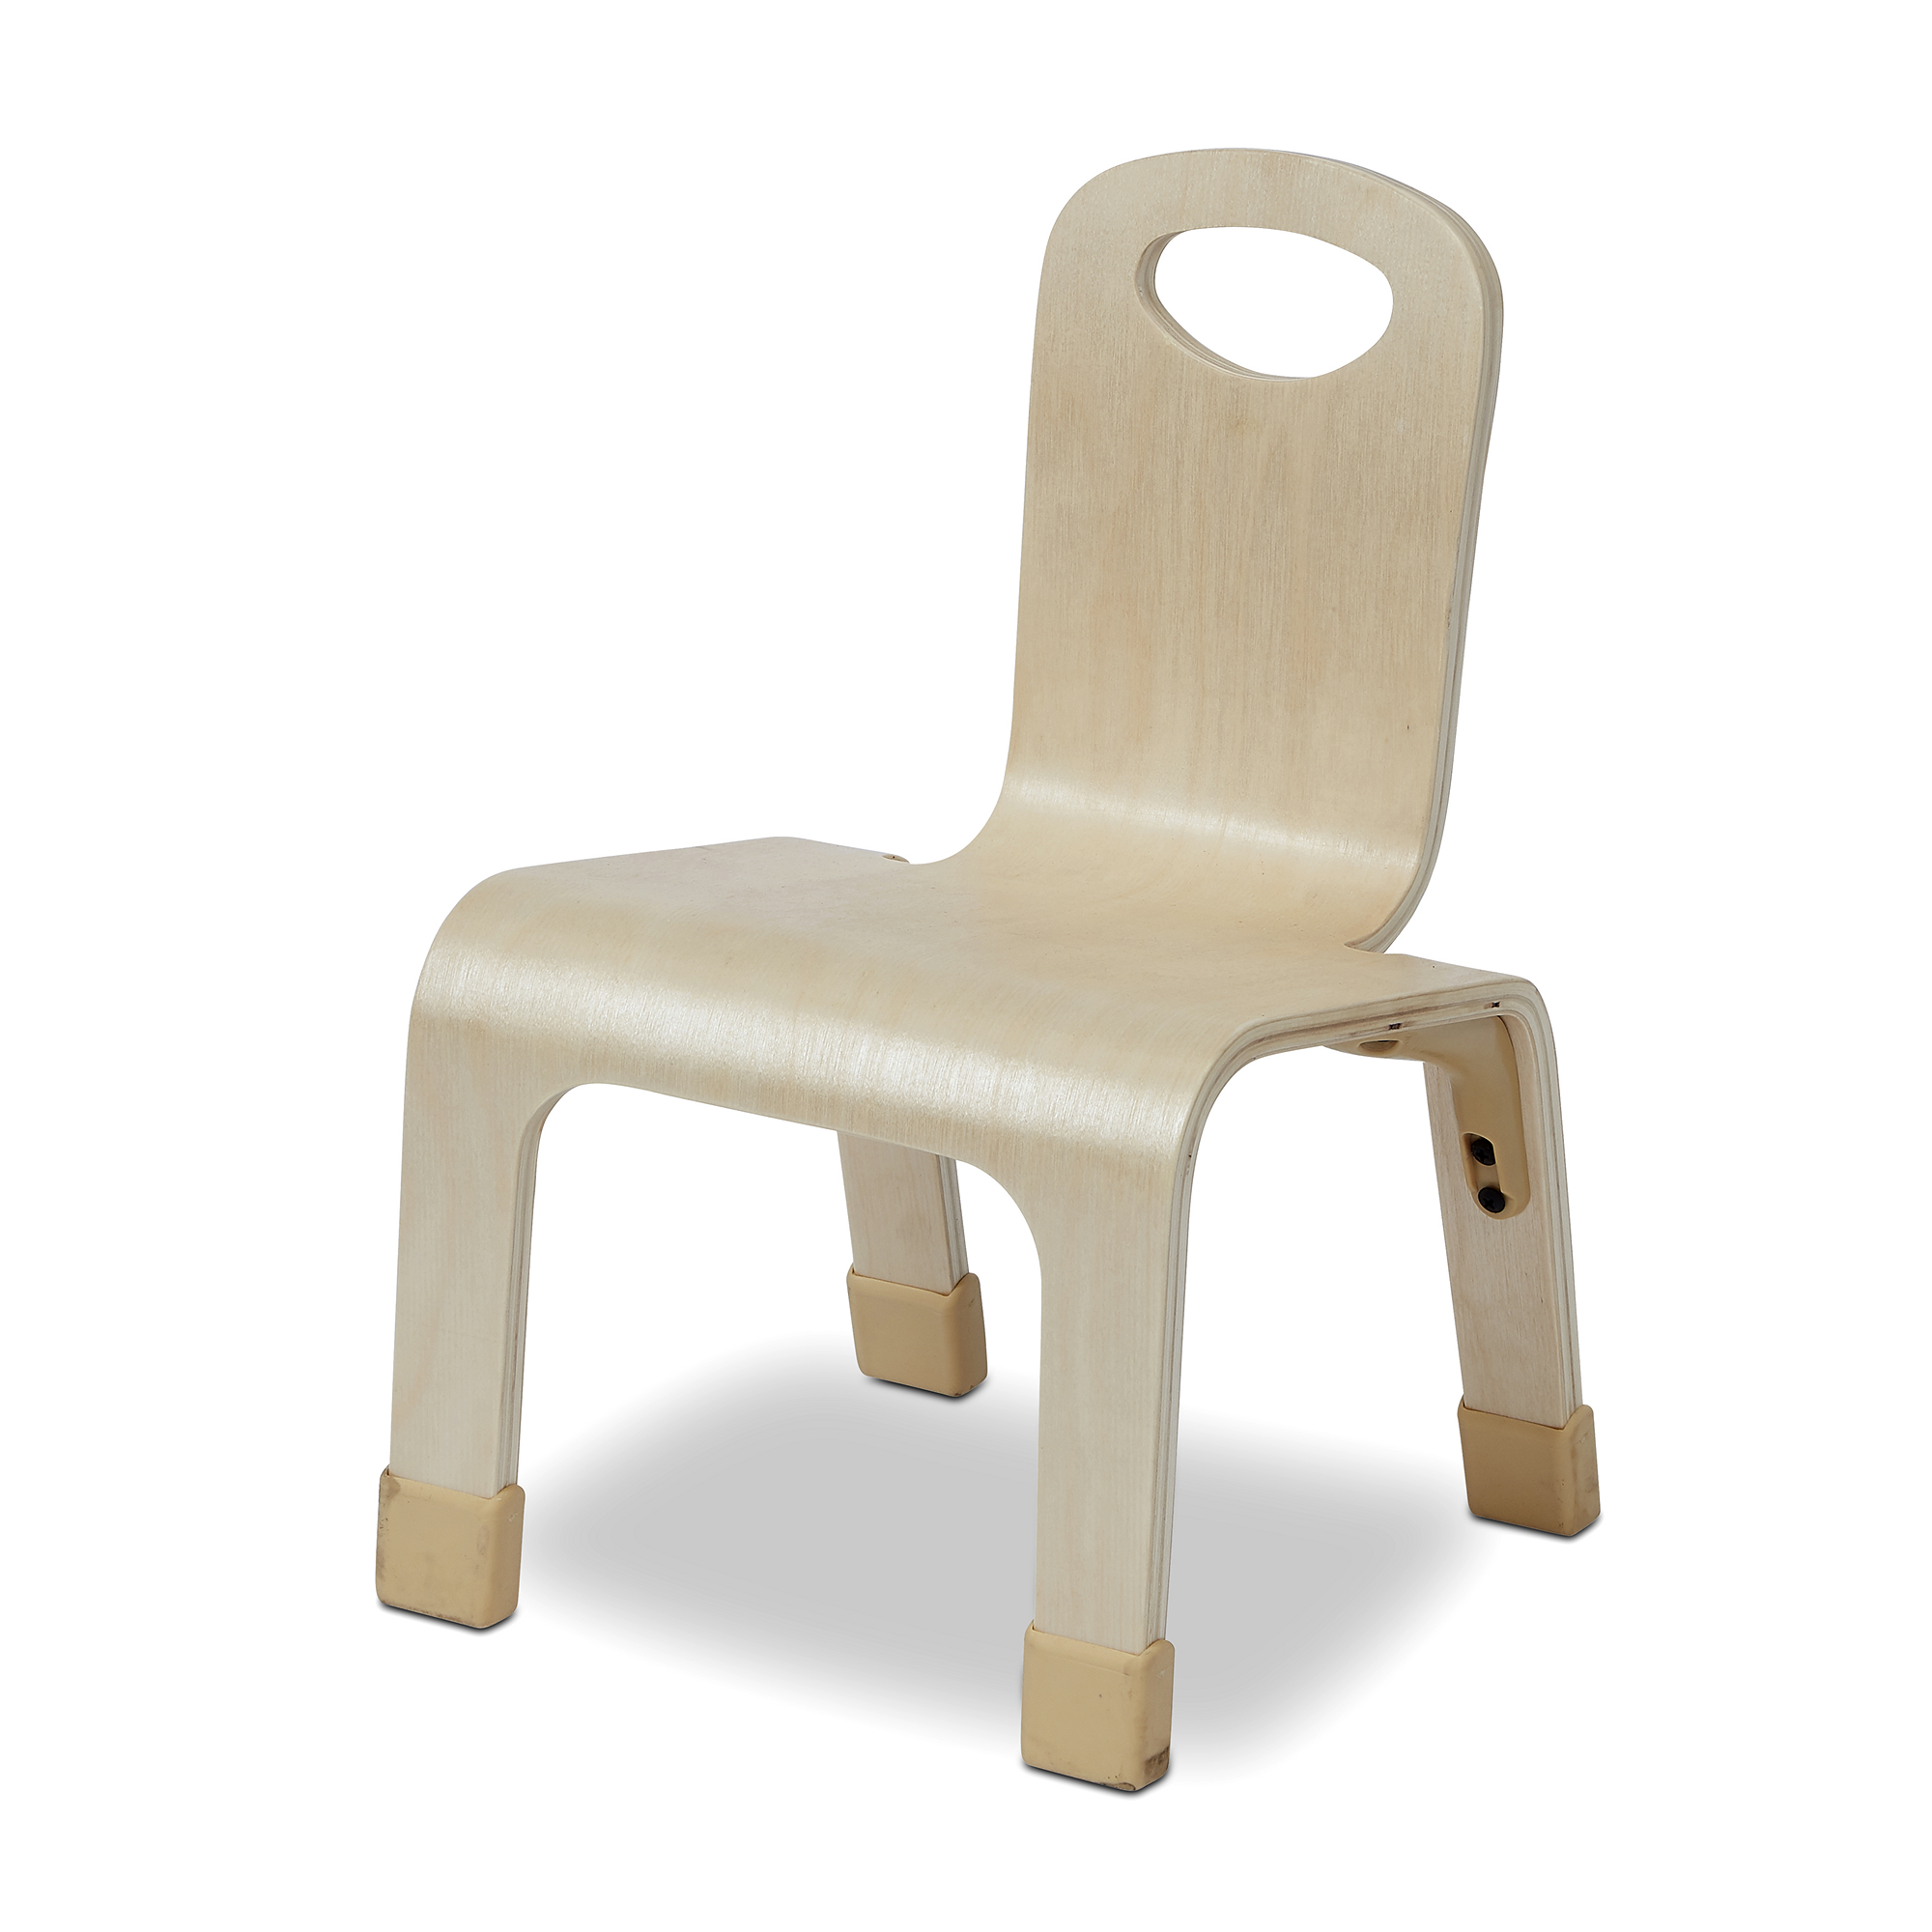 Millhouse Set Of 4 Wooden Chairs 210mm Height